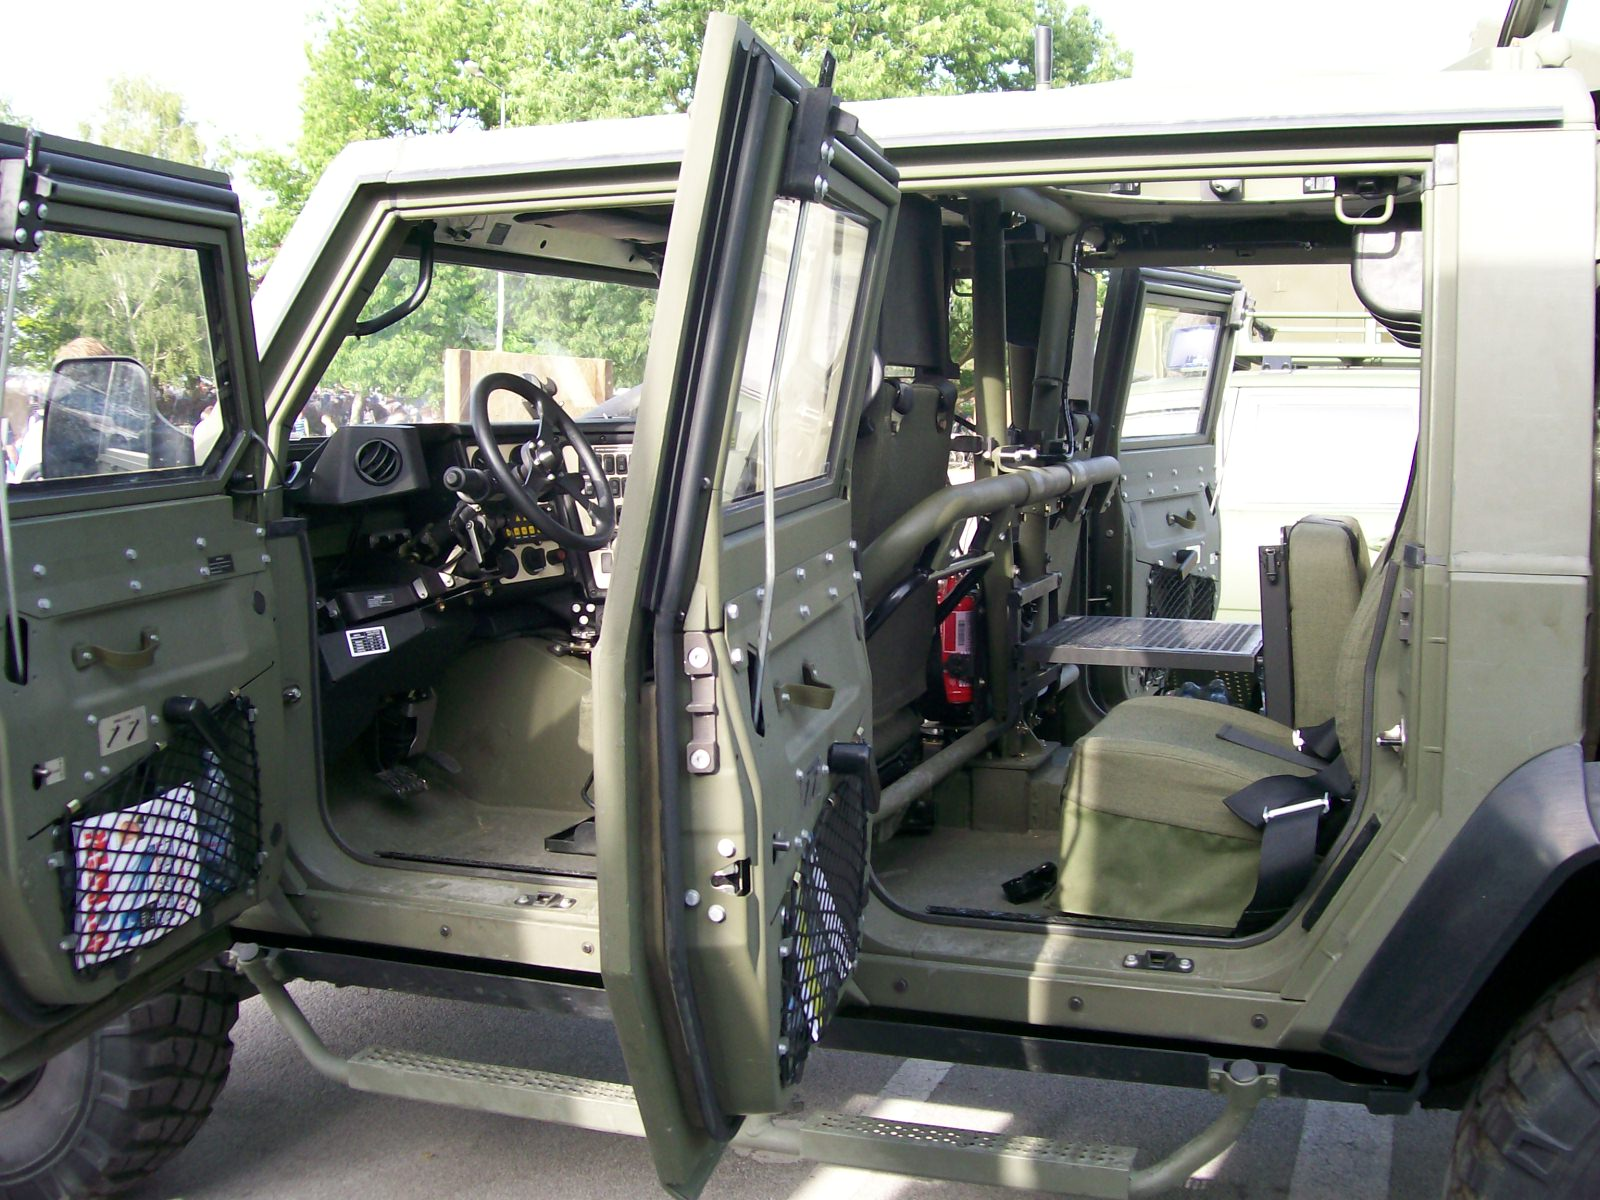 Description iveco lmv croarmy